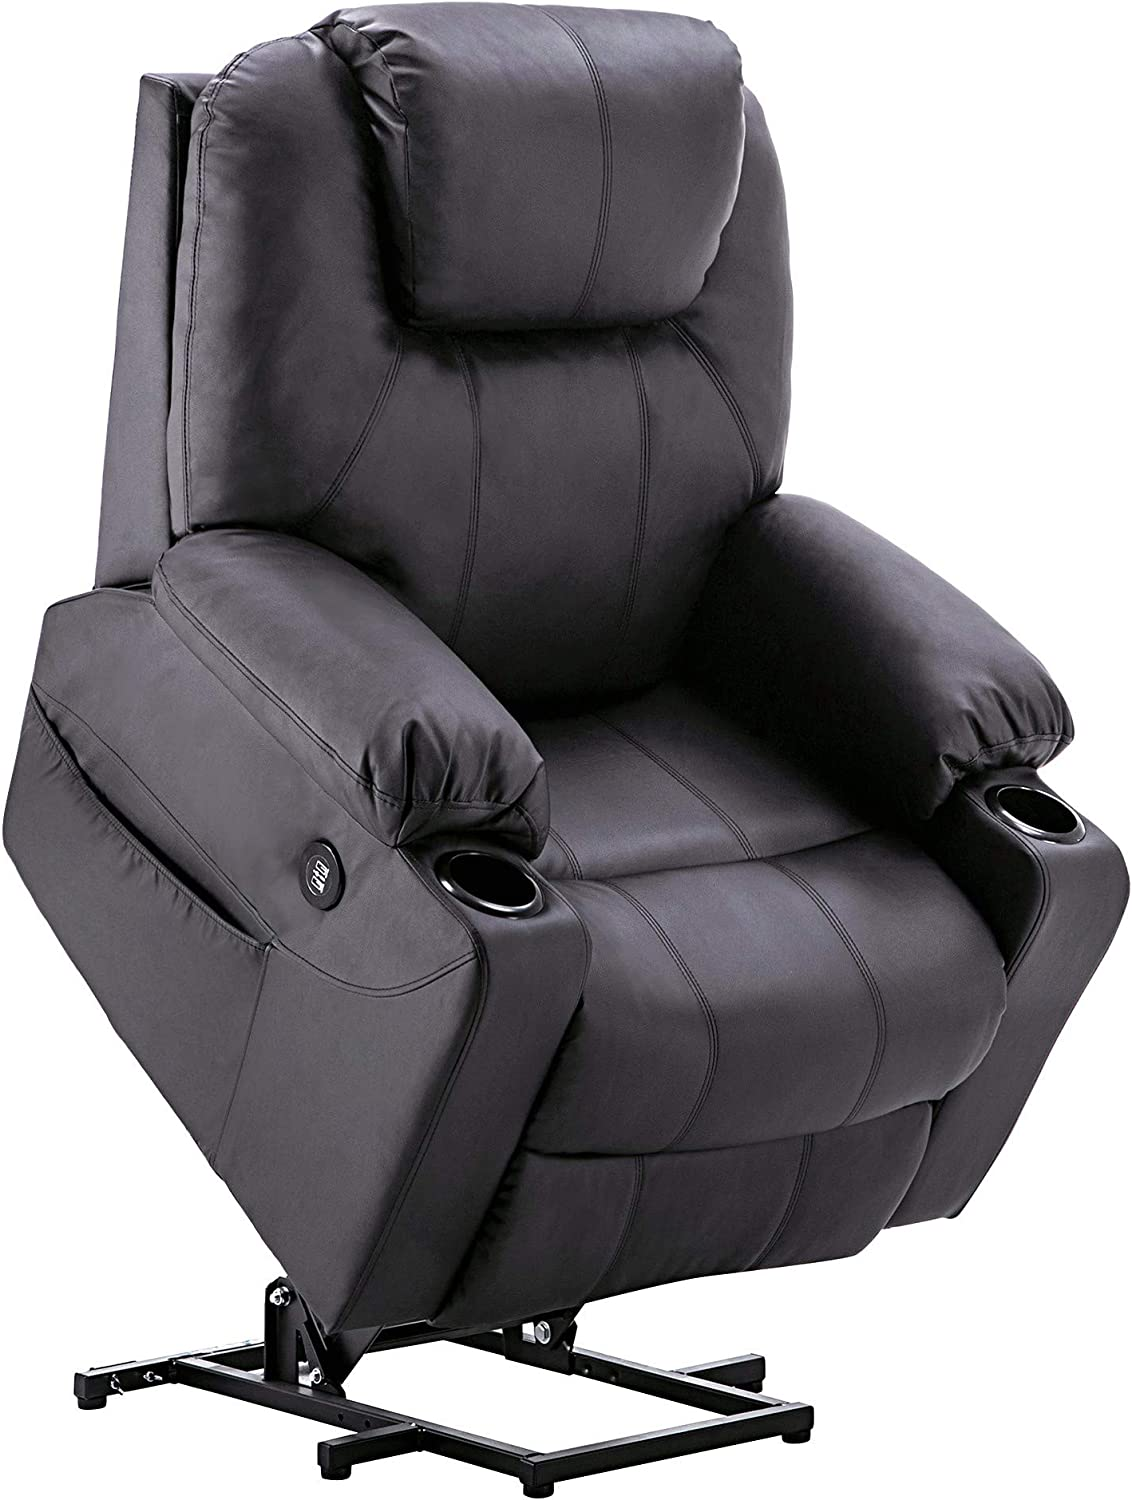 Best Recliners for Seniors & Elderly Review in 2019 - Top